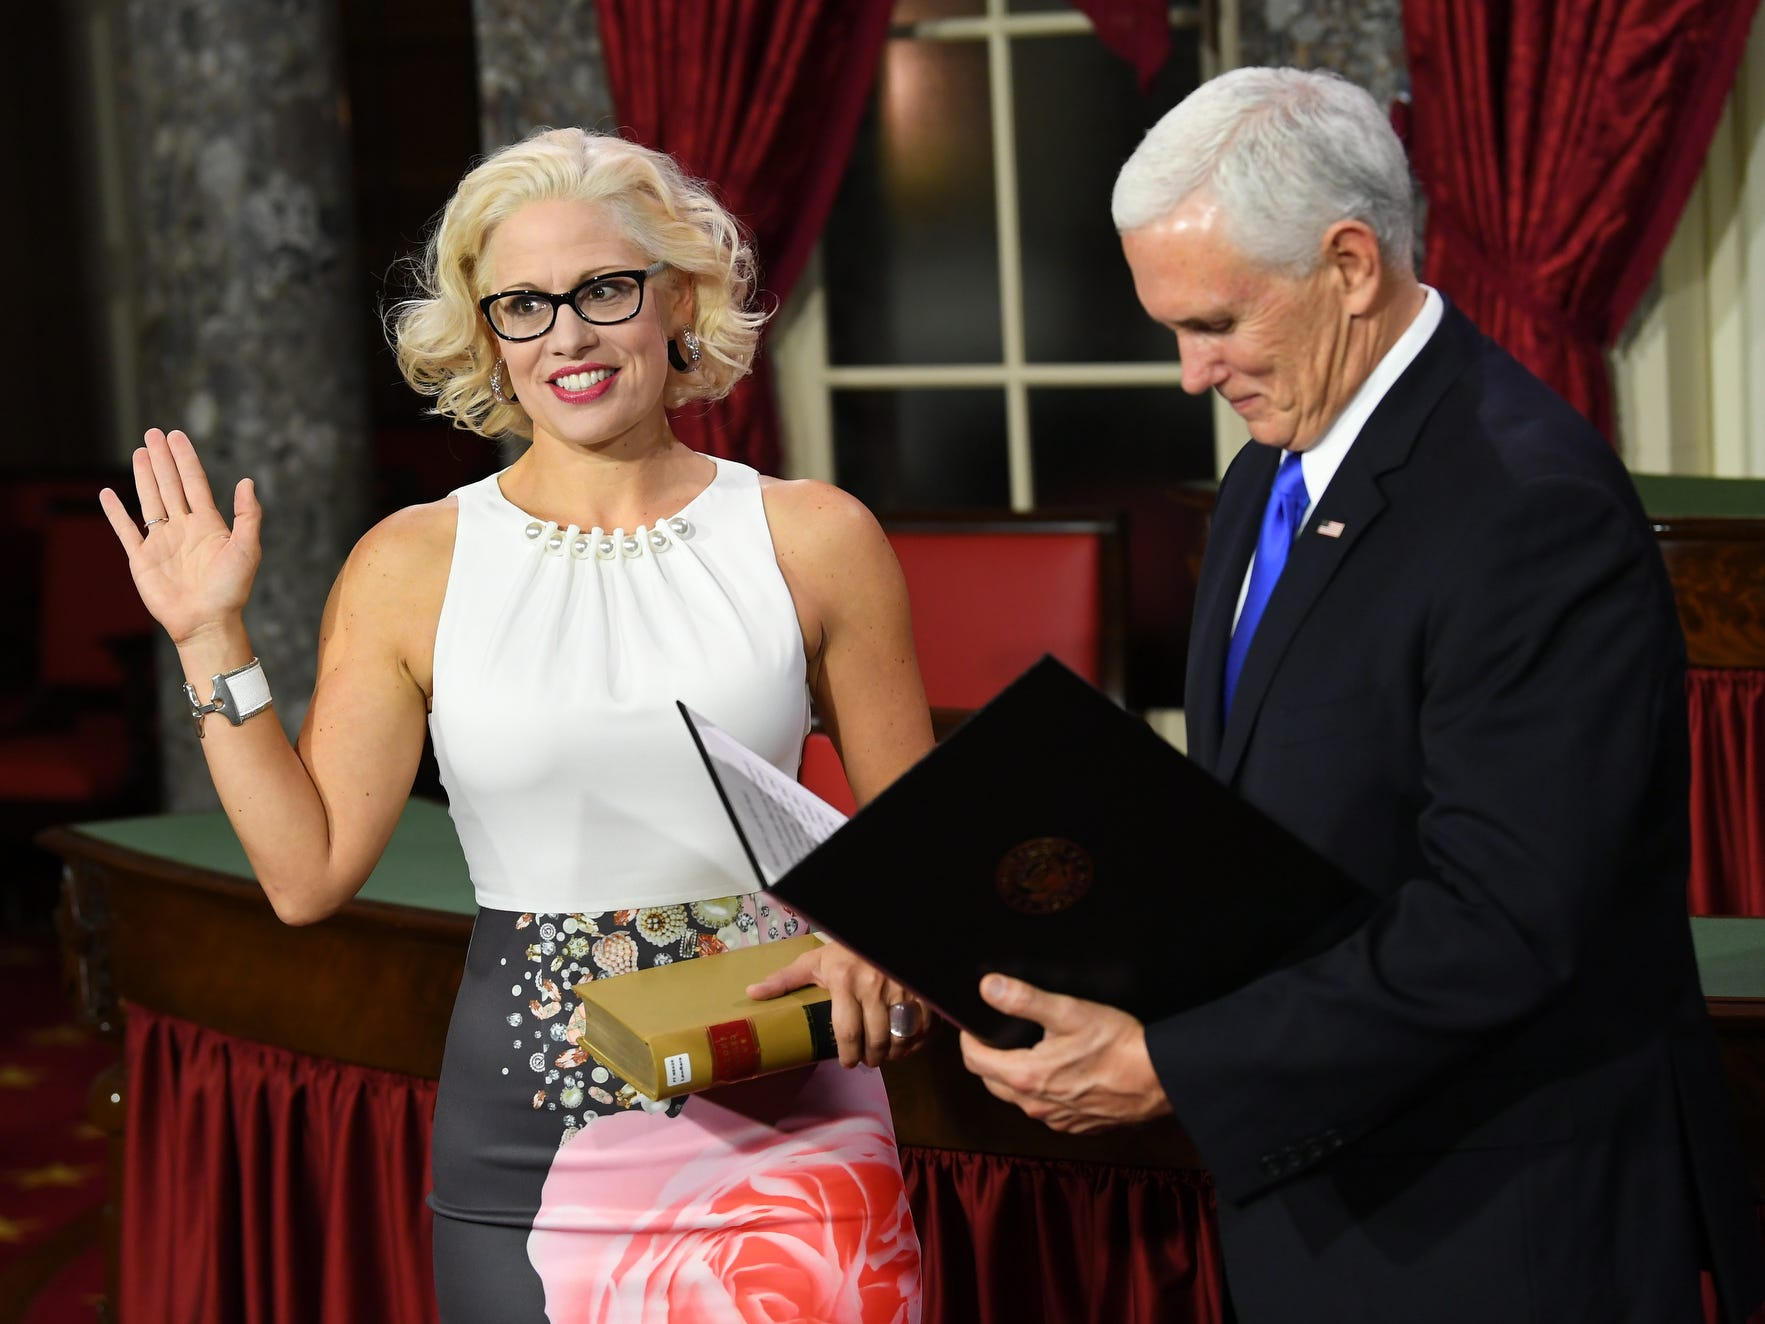 Vice President Mike Pence officiates ceremonial swearing of Senator Kyrsten Sinema (D-AZ).